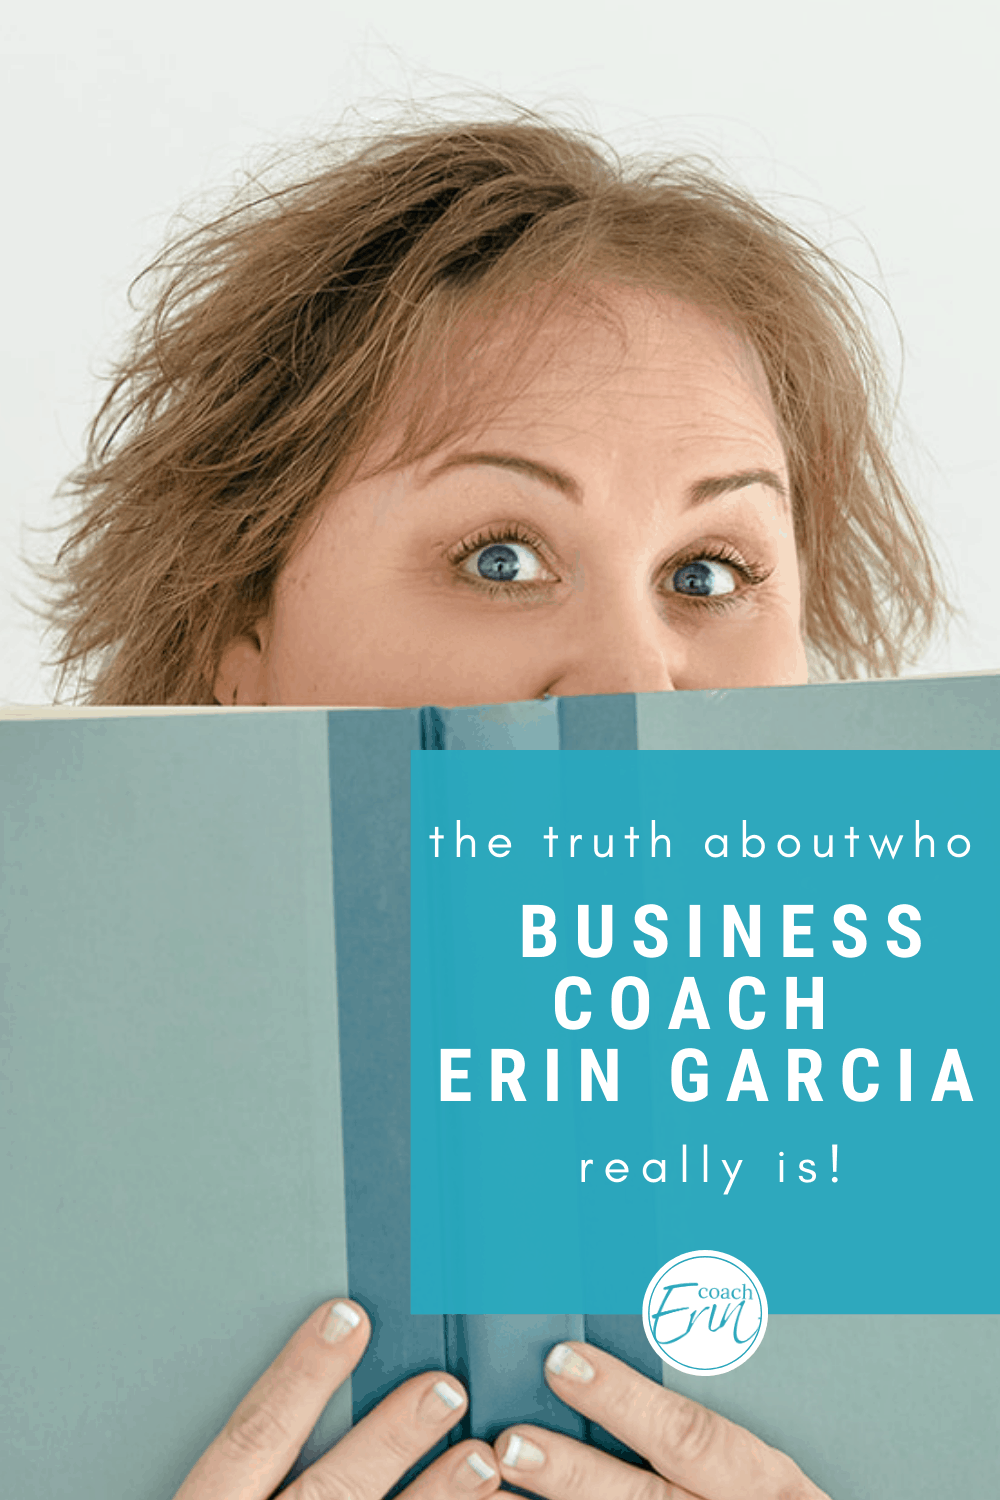 The truth about who business Coach Erin Garcia really is